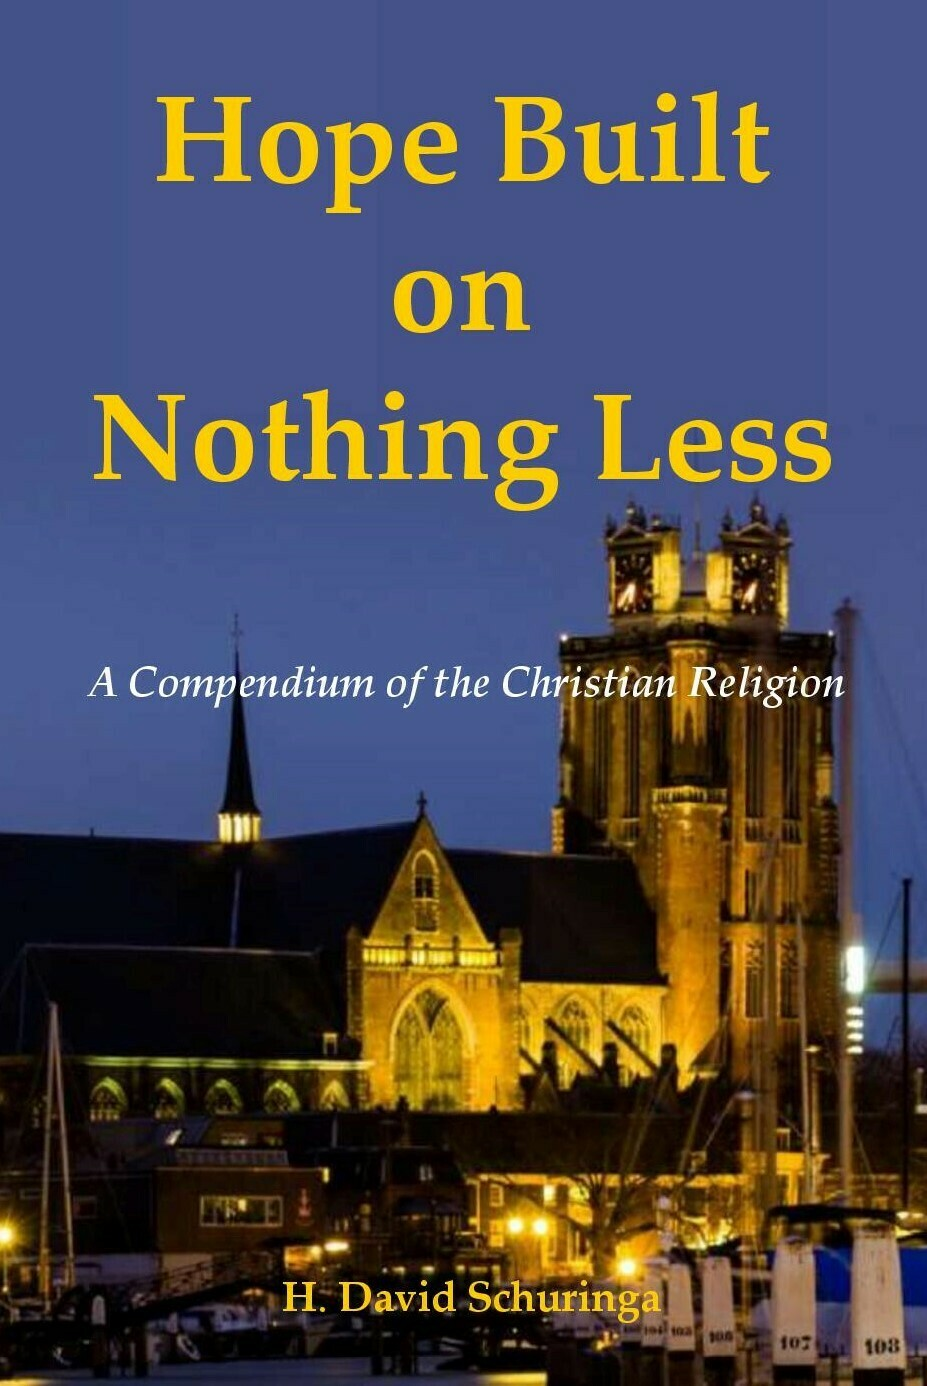 Hope Built on Nothing Less: A Compendium of the Christian Religion by H. David Schuringa (Soft-Cover & E-Book)